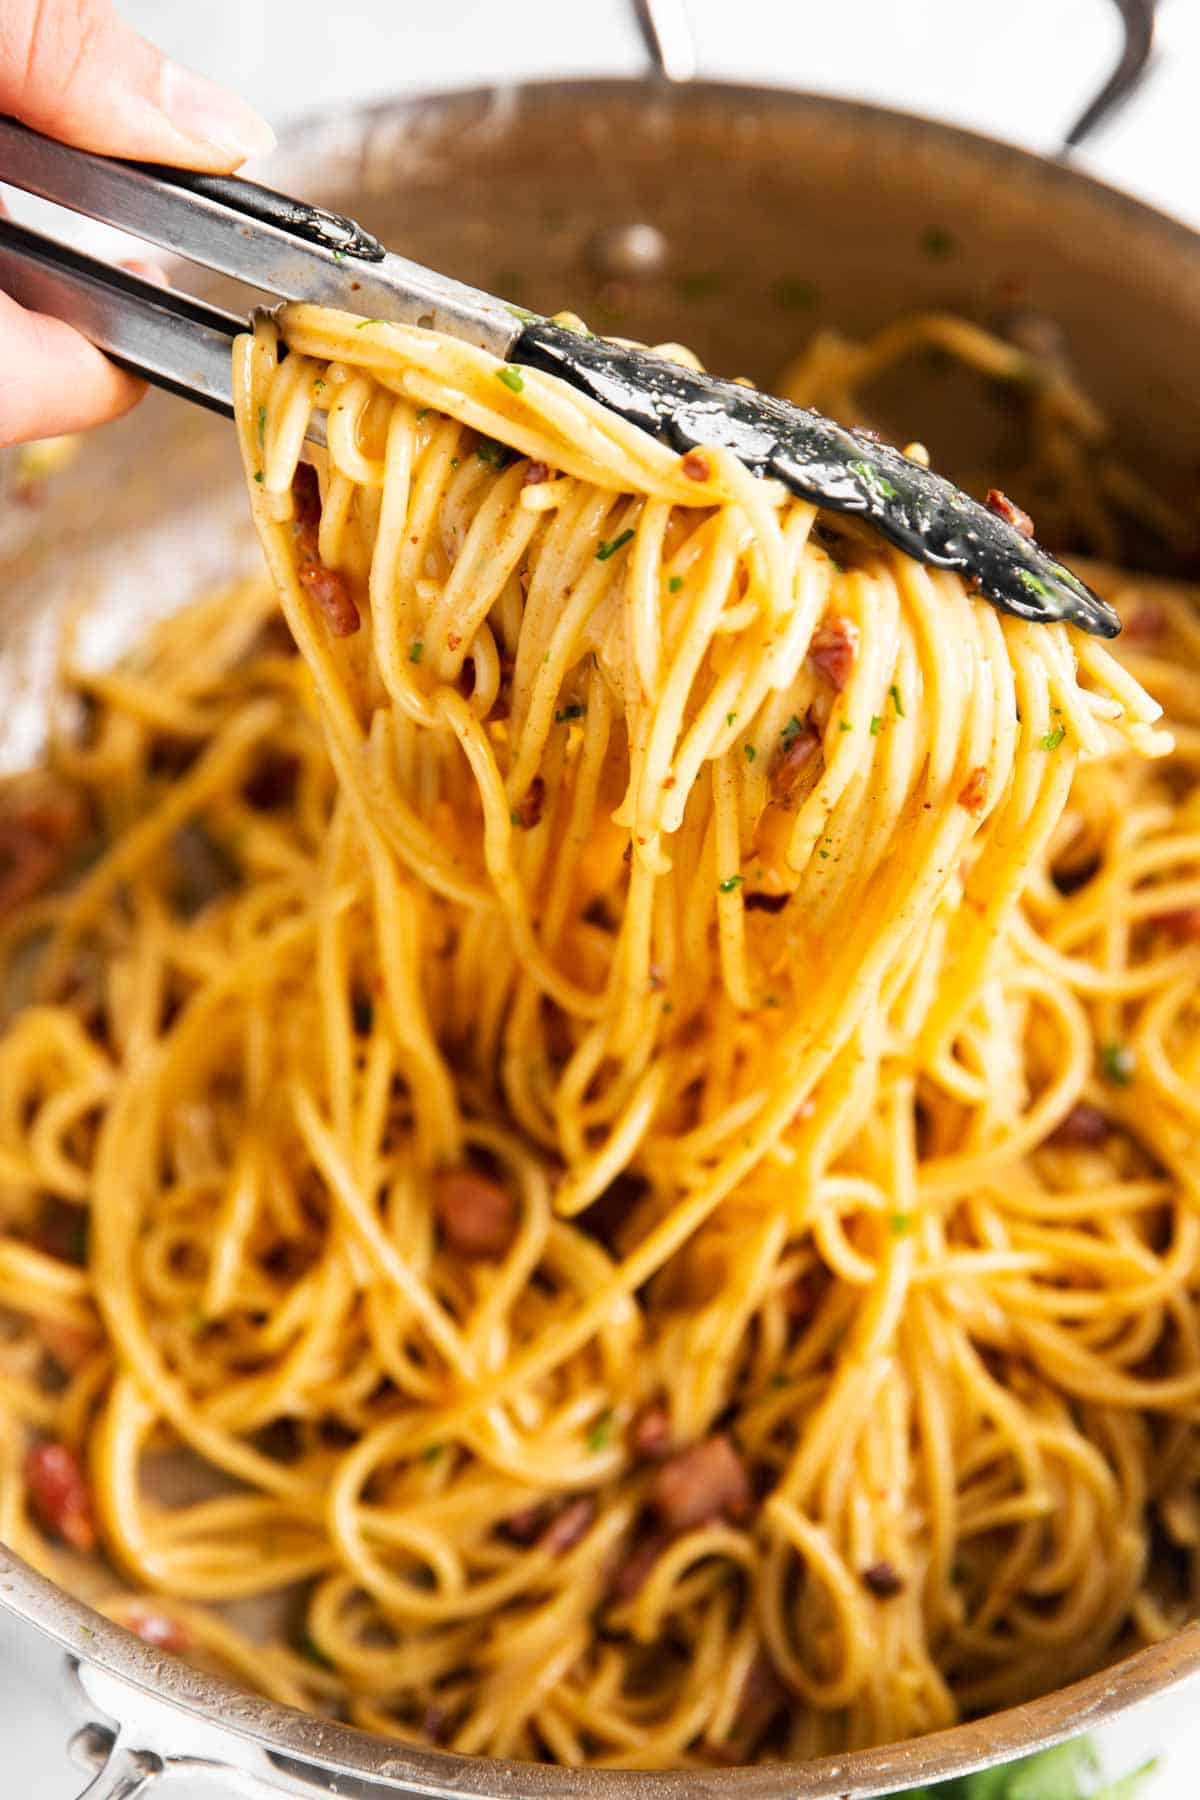 pulling spaghetti carbonara from stainless steel pan with kitchen tongs